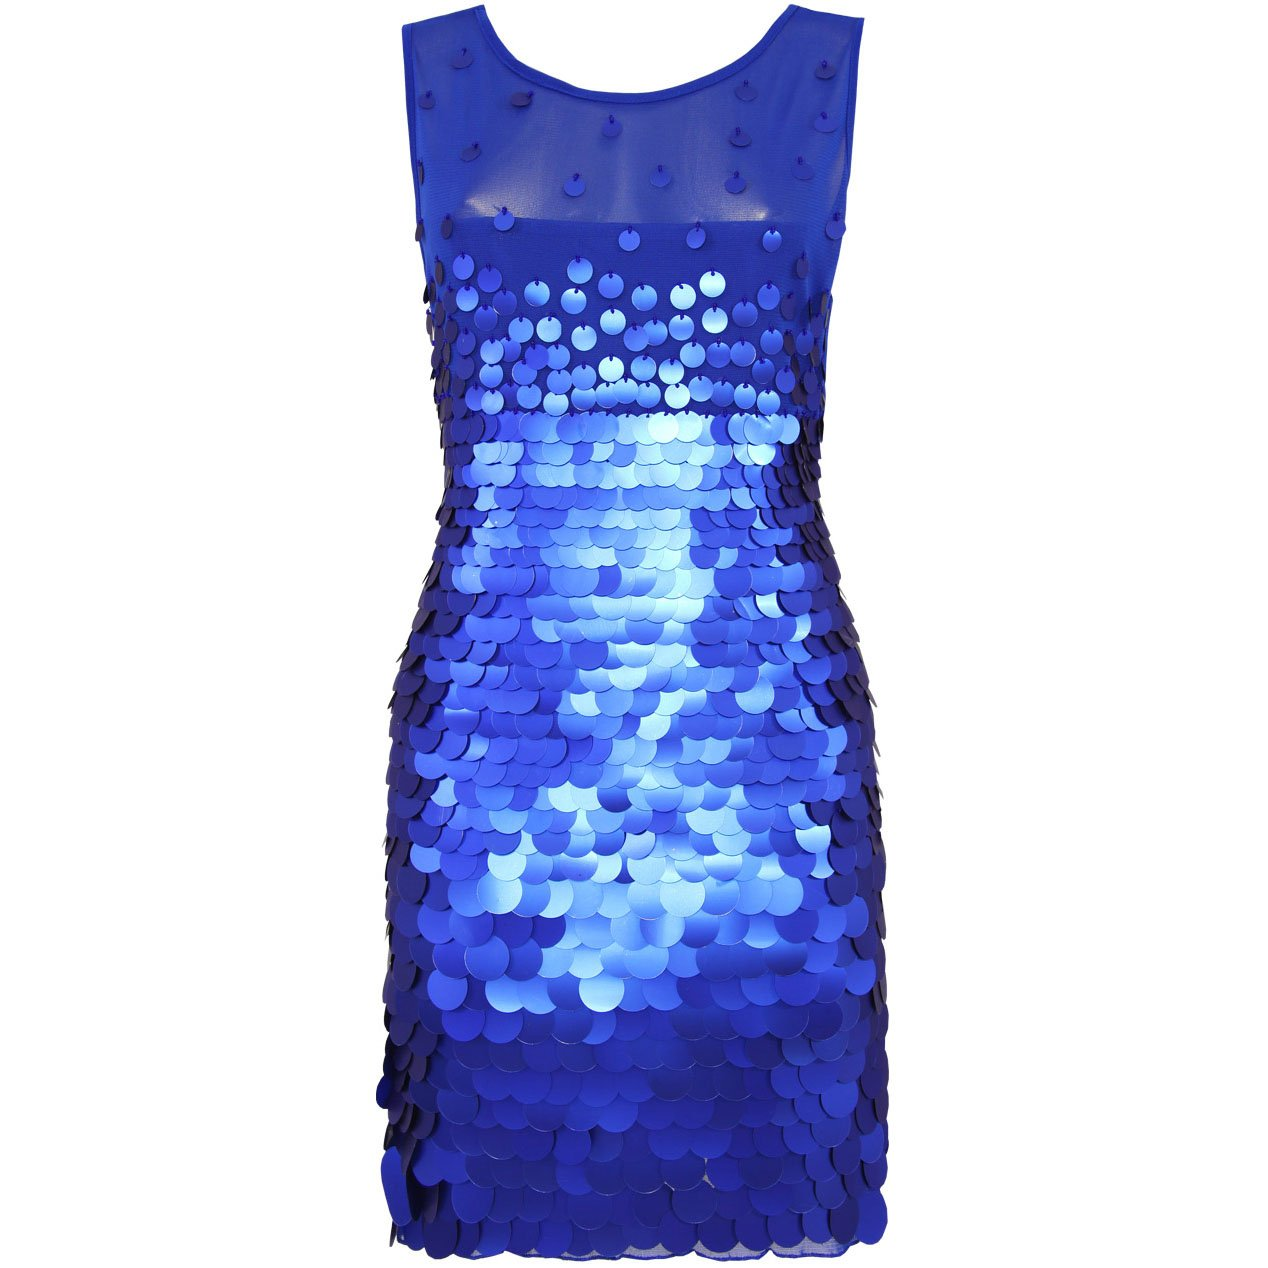 BLUE SEQUIN MESH BODYCON EVENING MINI COCKTAIL CLUBWEAR PARTY PROM DRESS UK SIZE 12-14, US SIZE 8-10